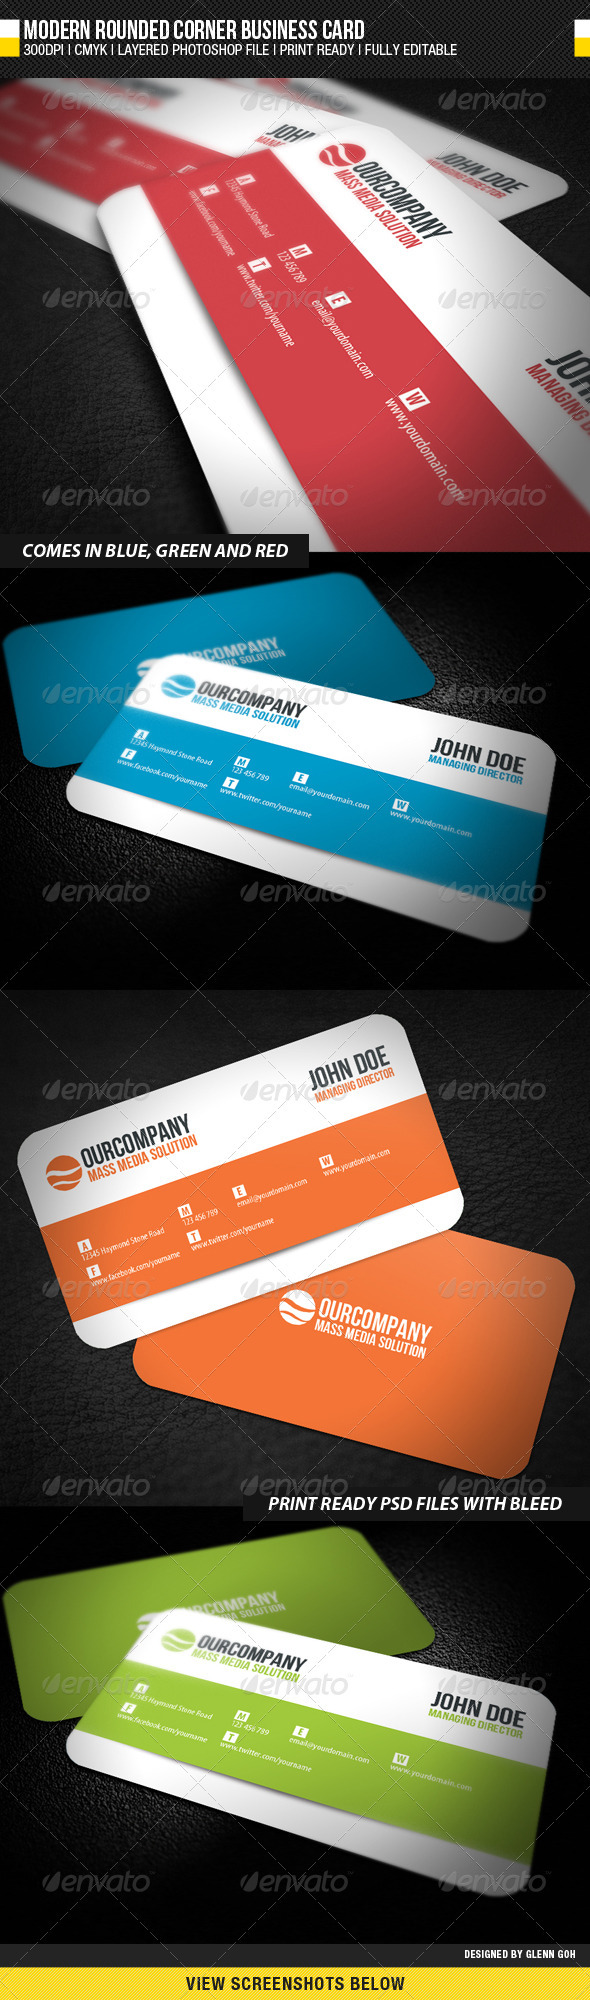 Modern Rounded Corner Business Card - Corporate Business Cards